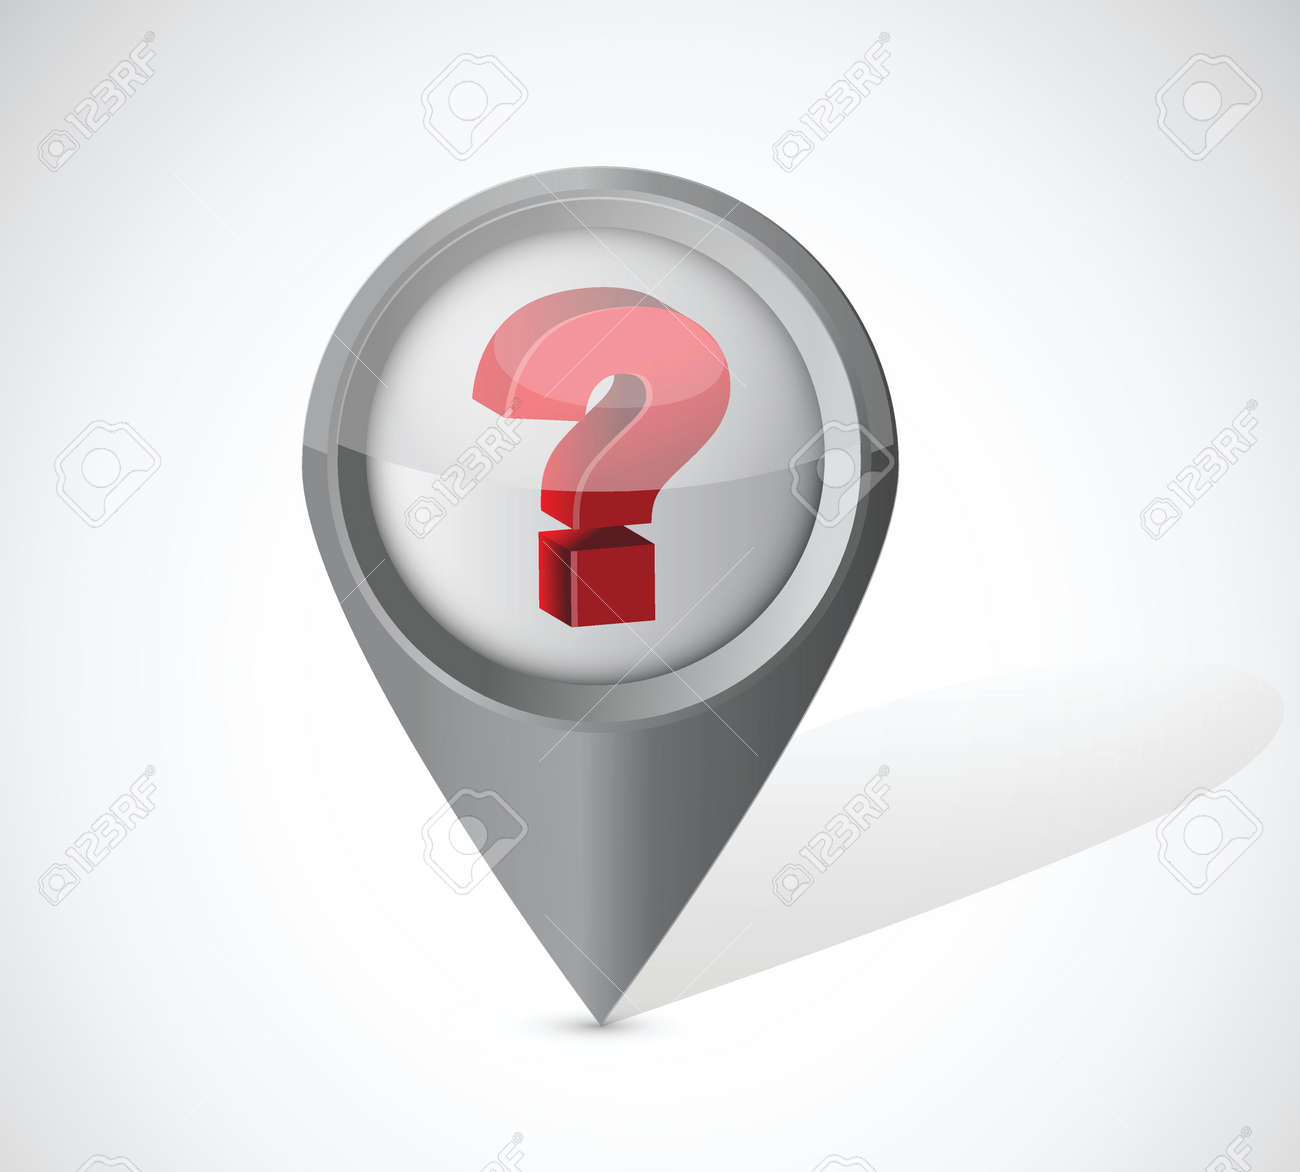 question mark pointer illustration over a white background Stock Vector - 22344550